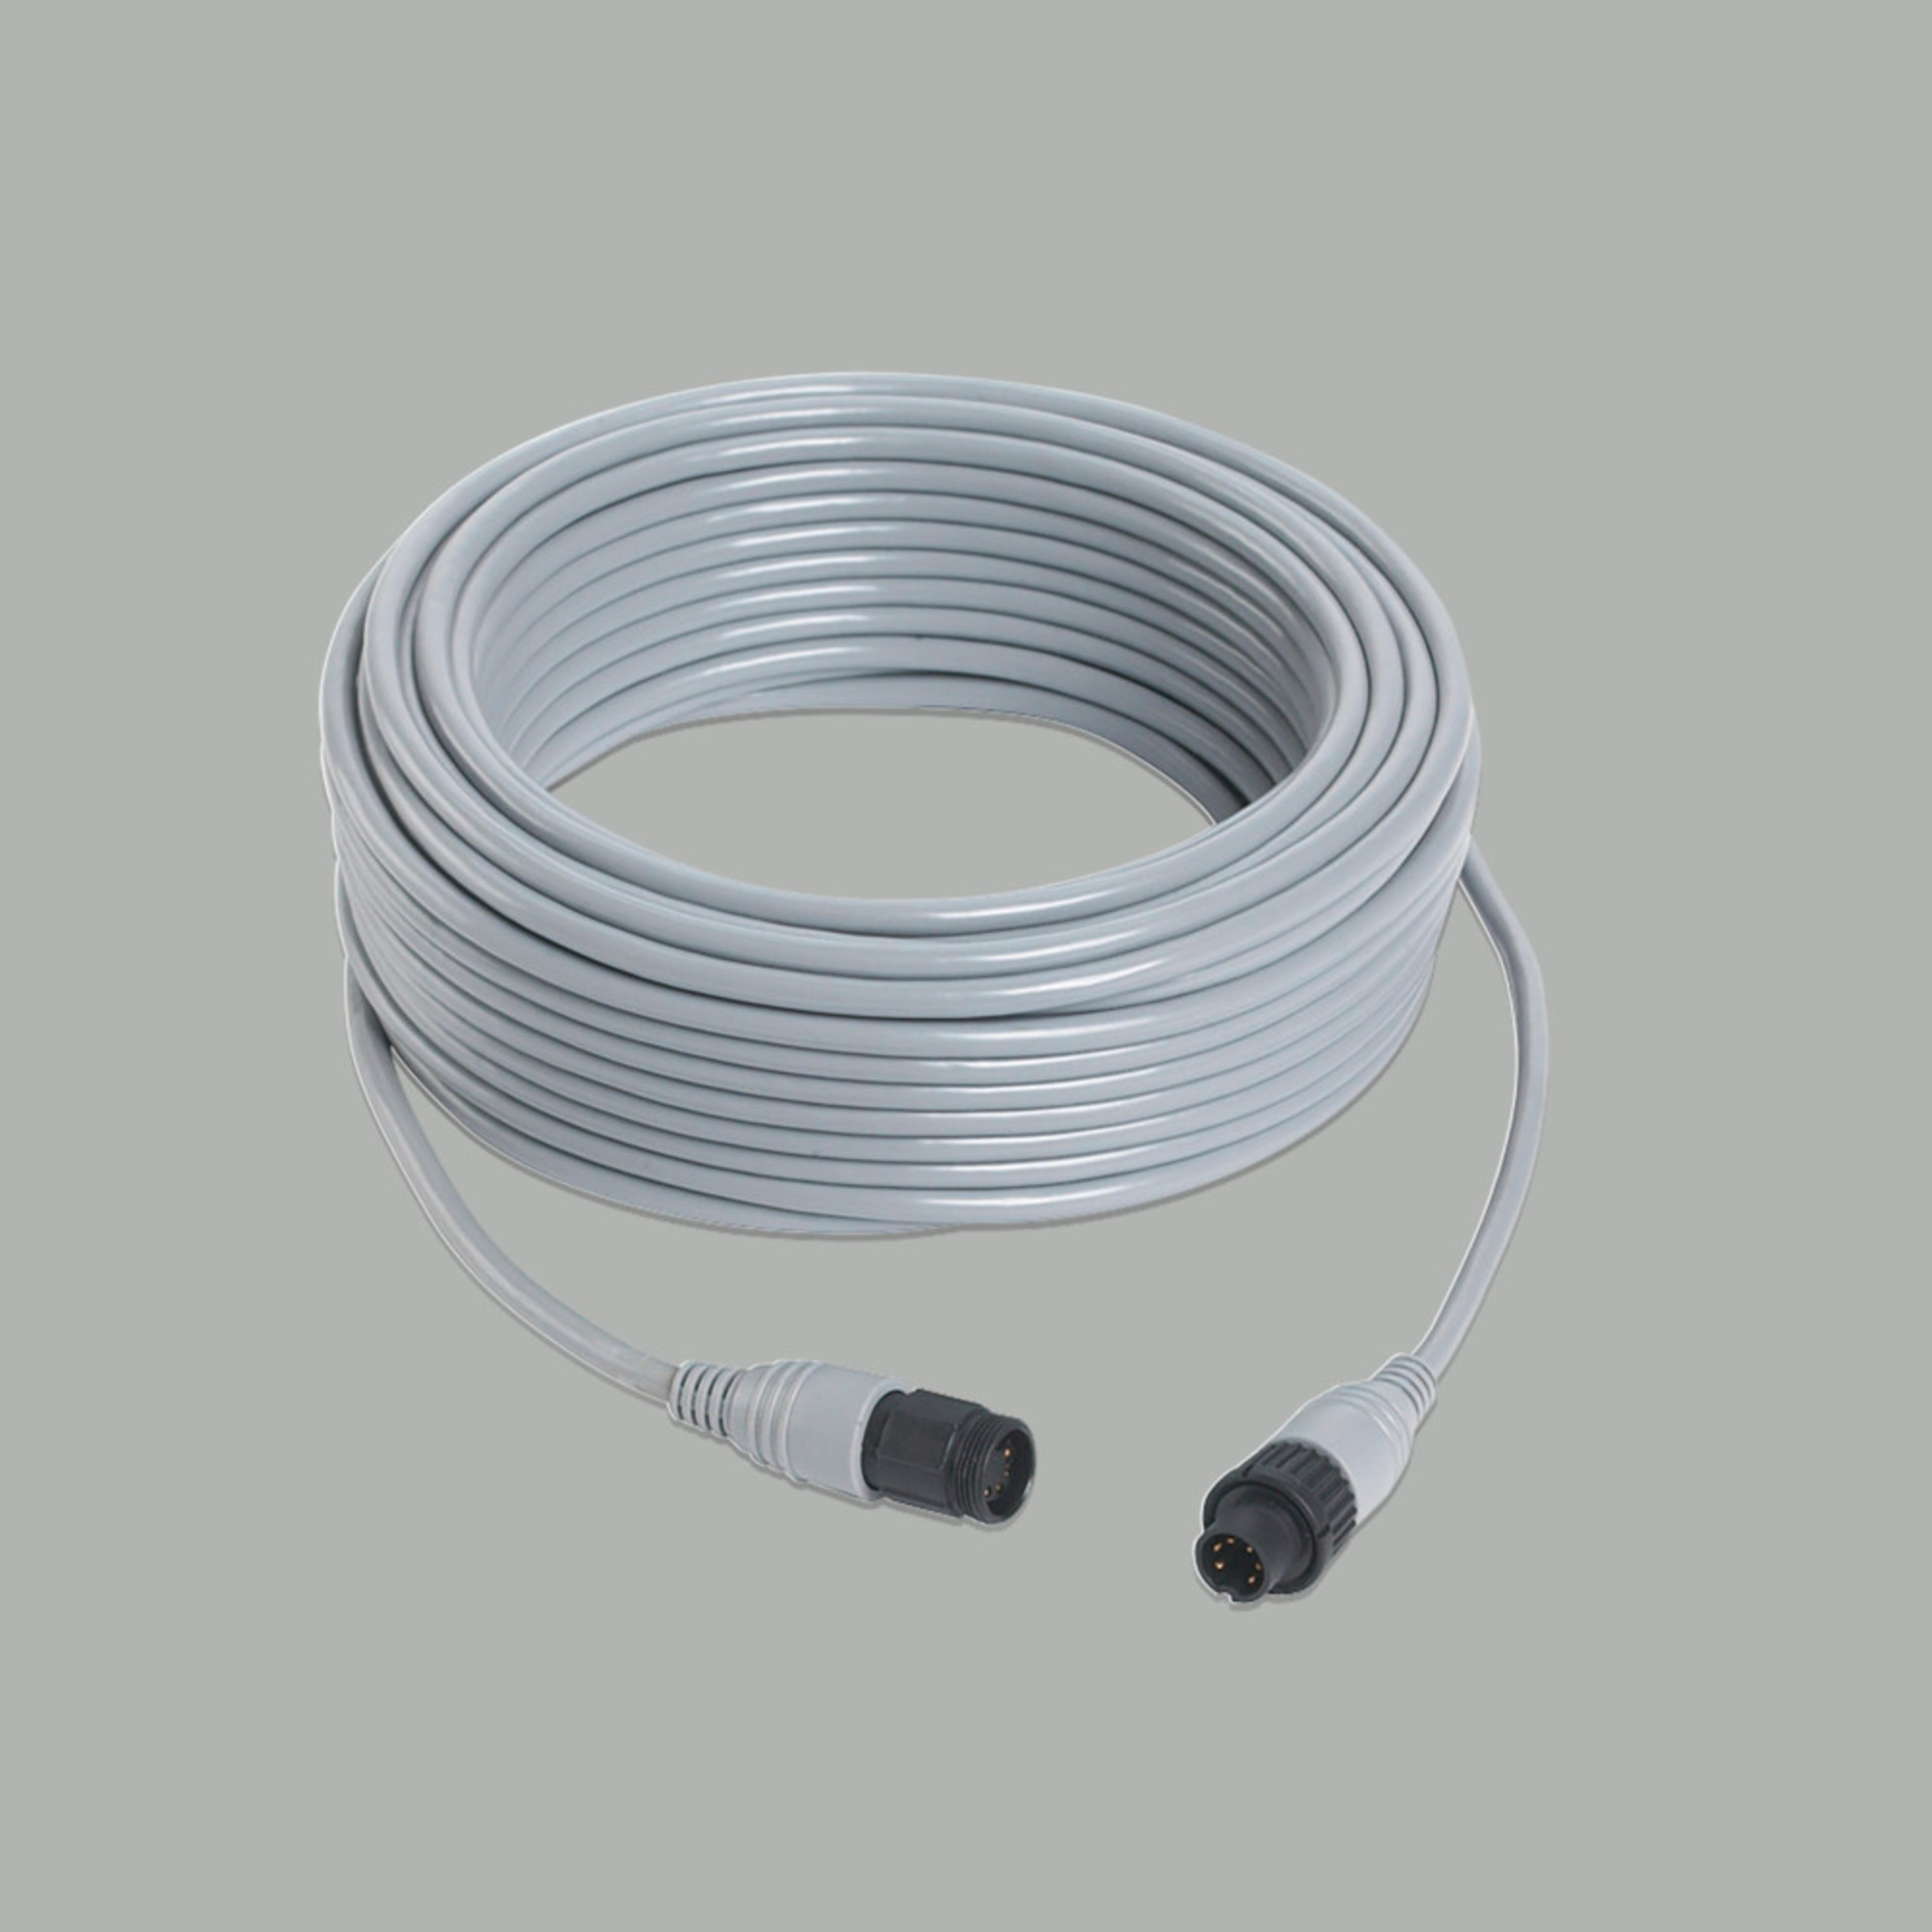 Dometic PerfectView SYSTEM EXTENSION CABLE 5M